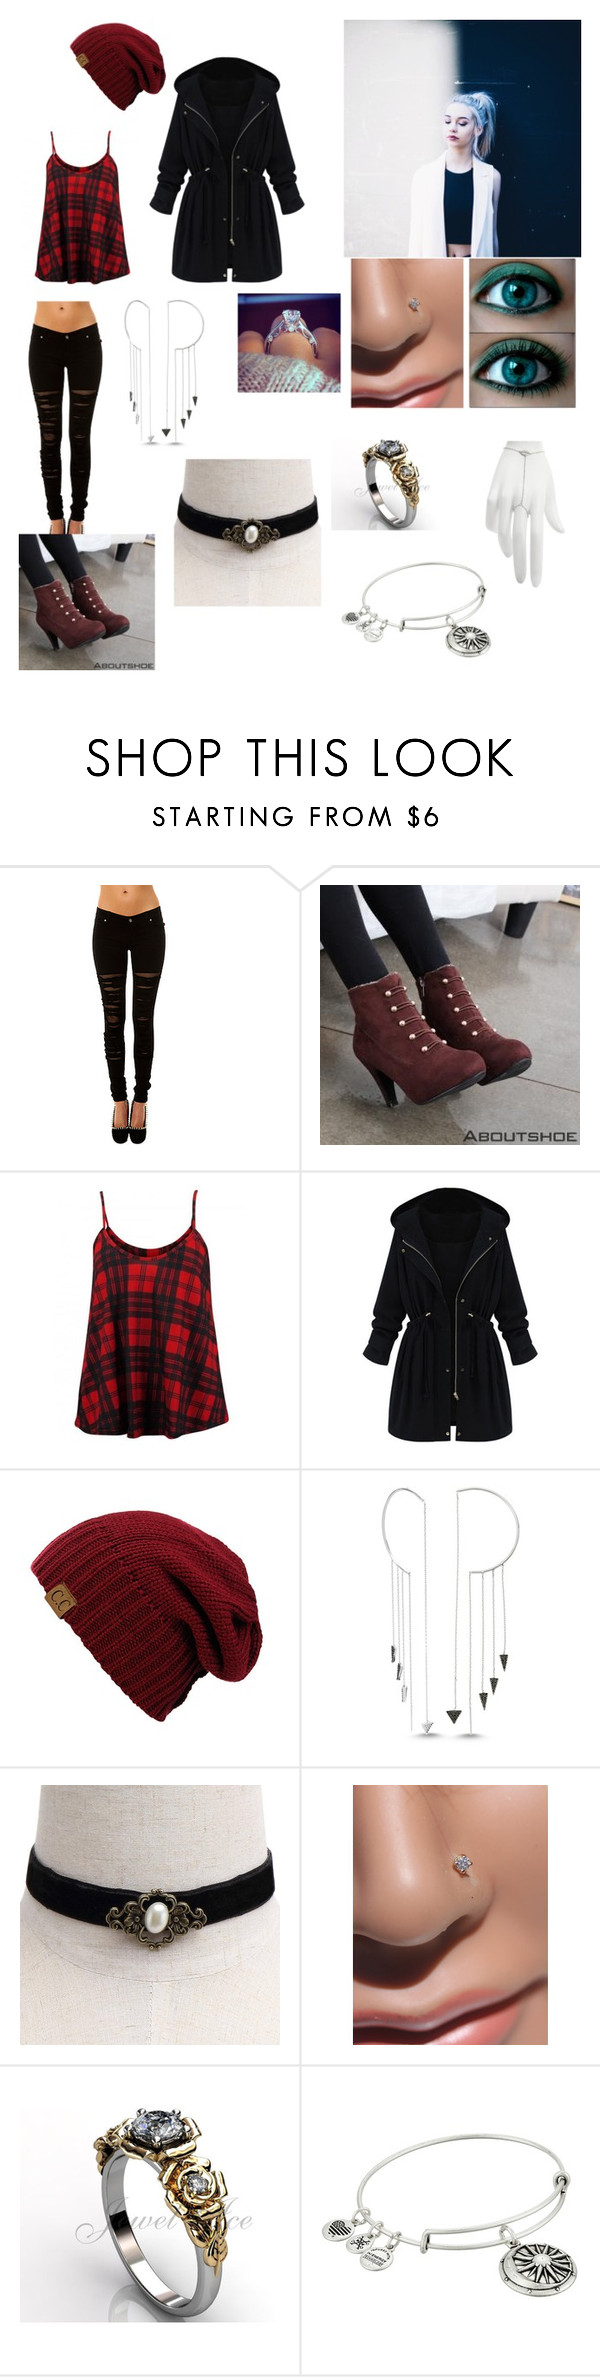 """Thalia Engels"" by ryanisobelle on Polyvore featuring moda, Verragio, Tripp, Aboutshoe, So in Fashion, Amorium, GV2 by Gevril, Alex and Ani y stella valle"